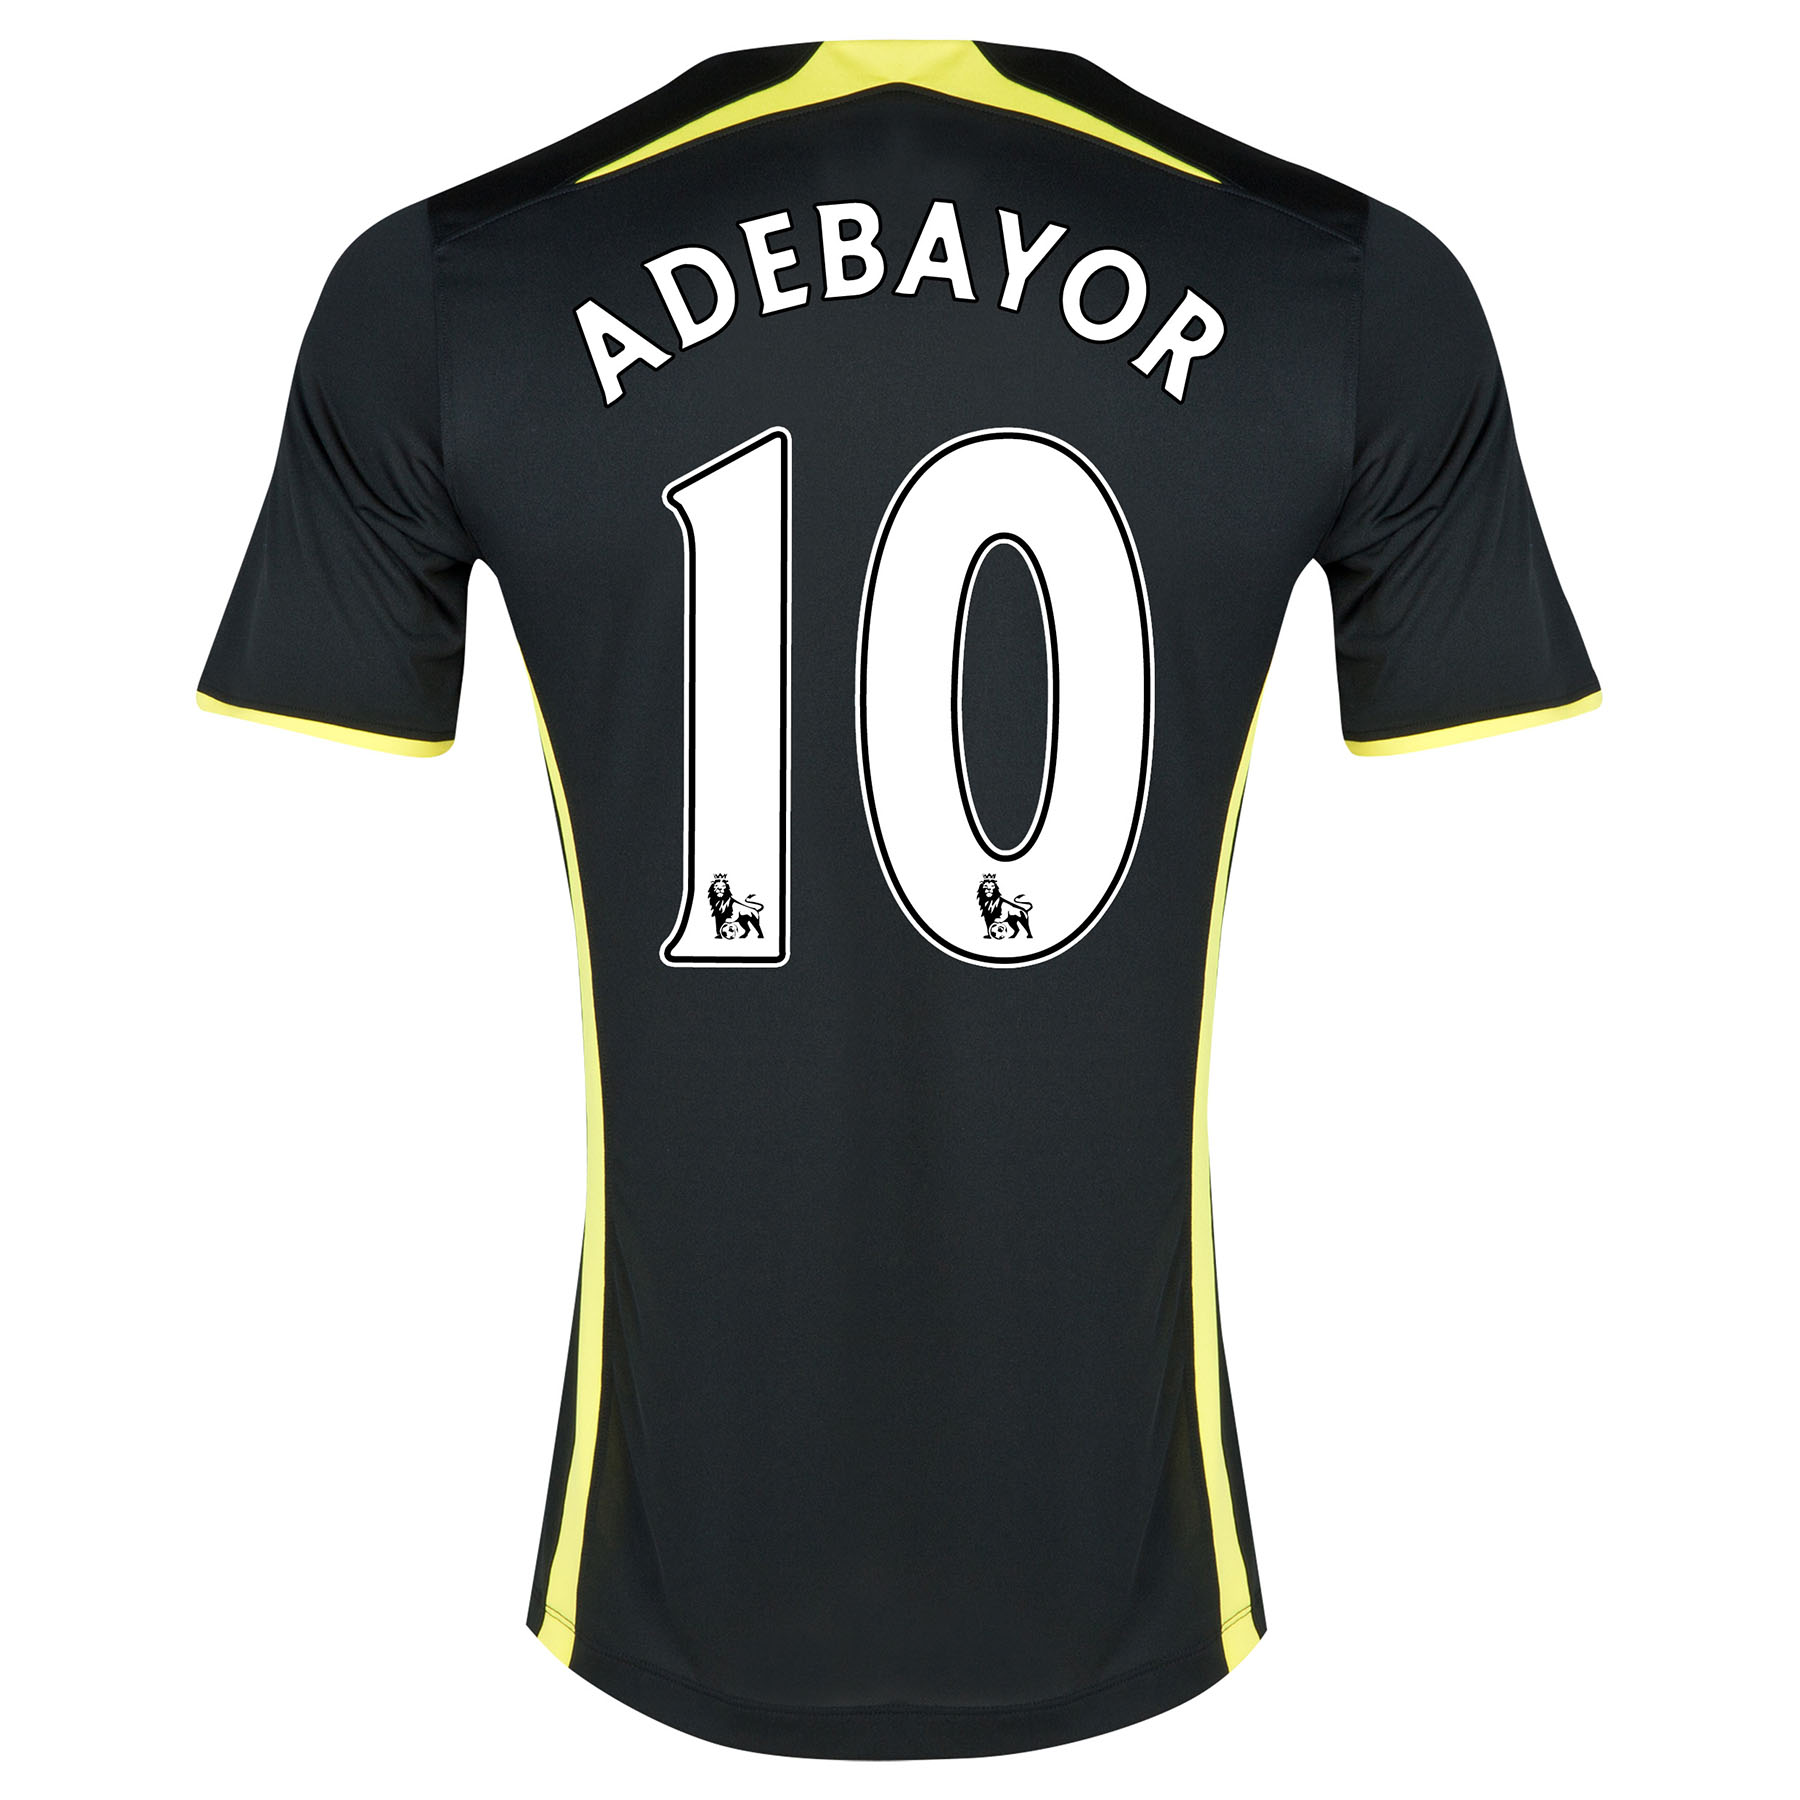 Tottenham Hotspur Away Shirt 2014/15 - Womens with Adebayor 10 printing